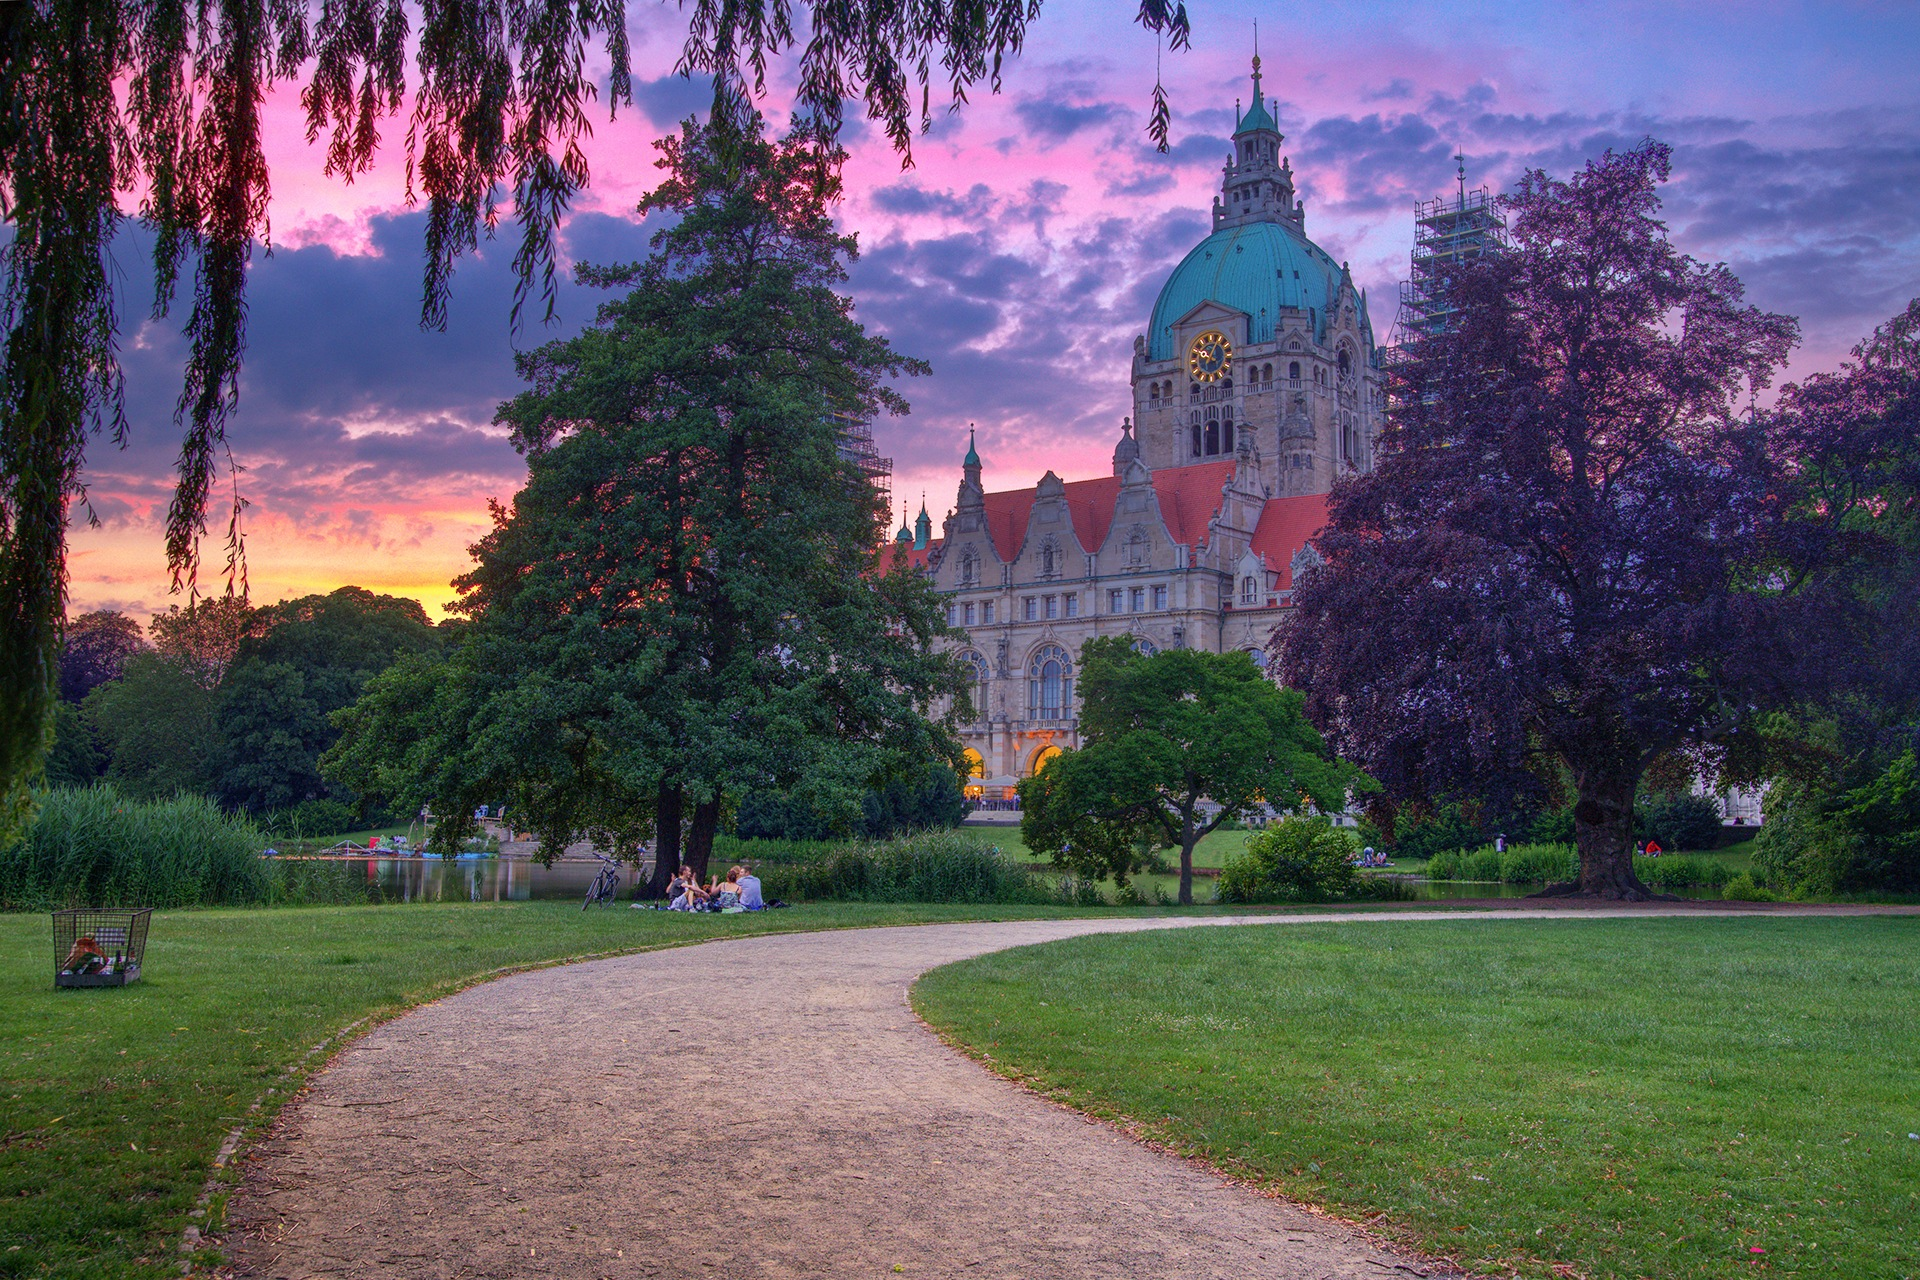 Maschpark Hannover by Maik Richter Photography